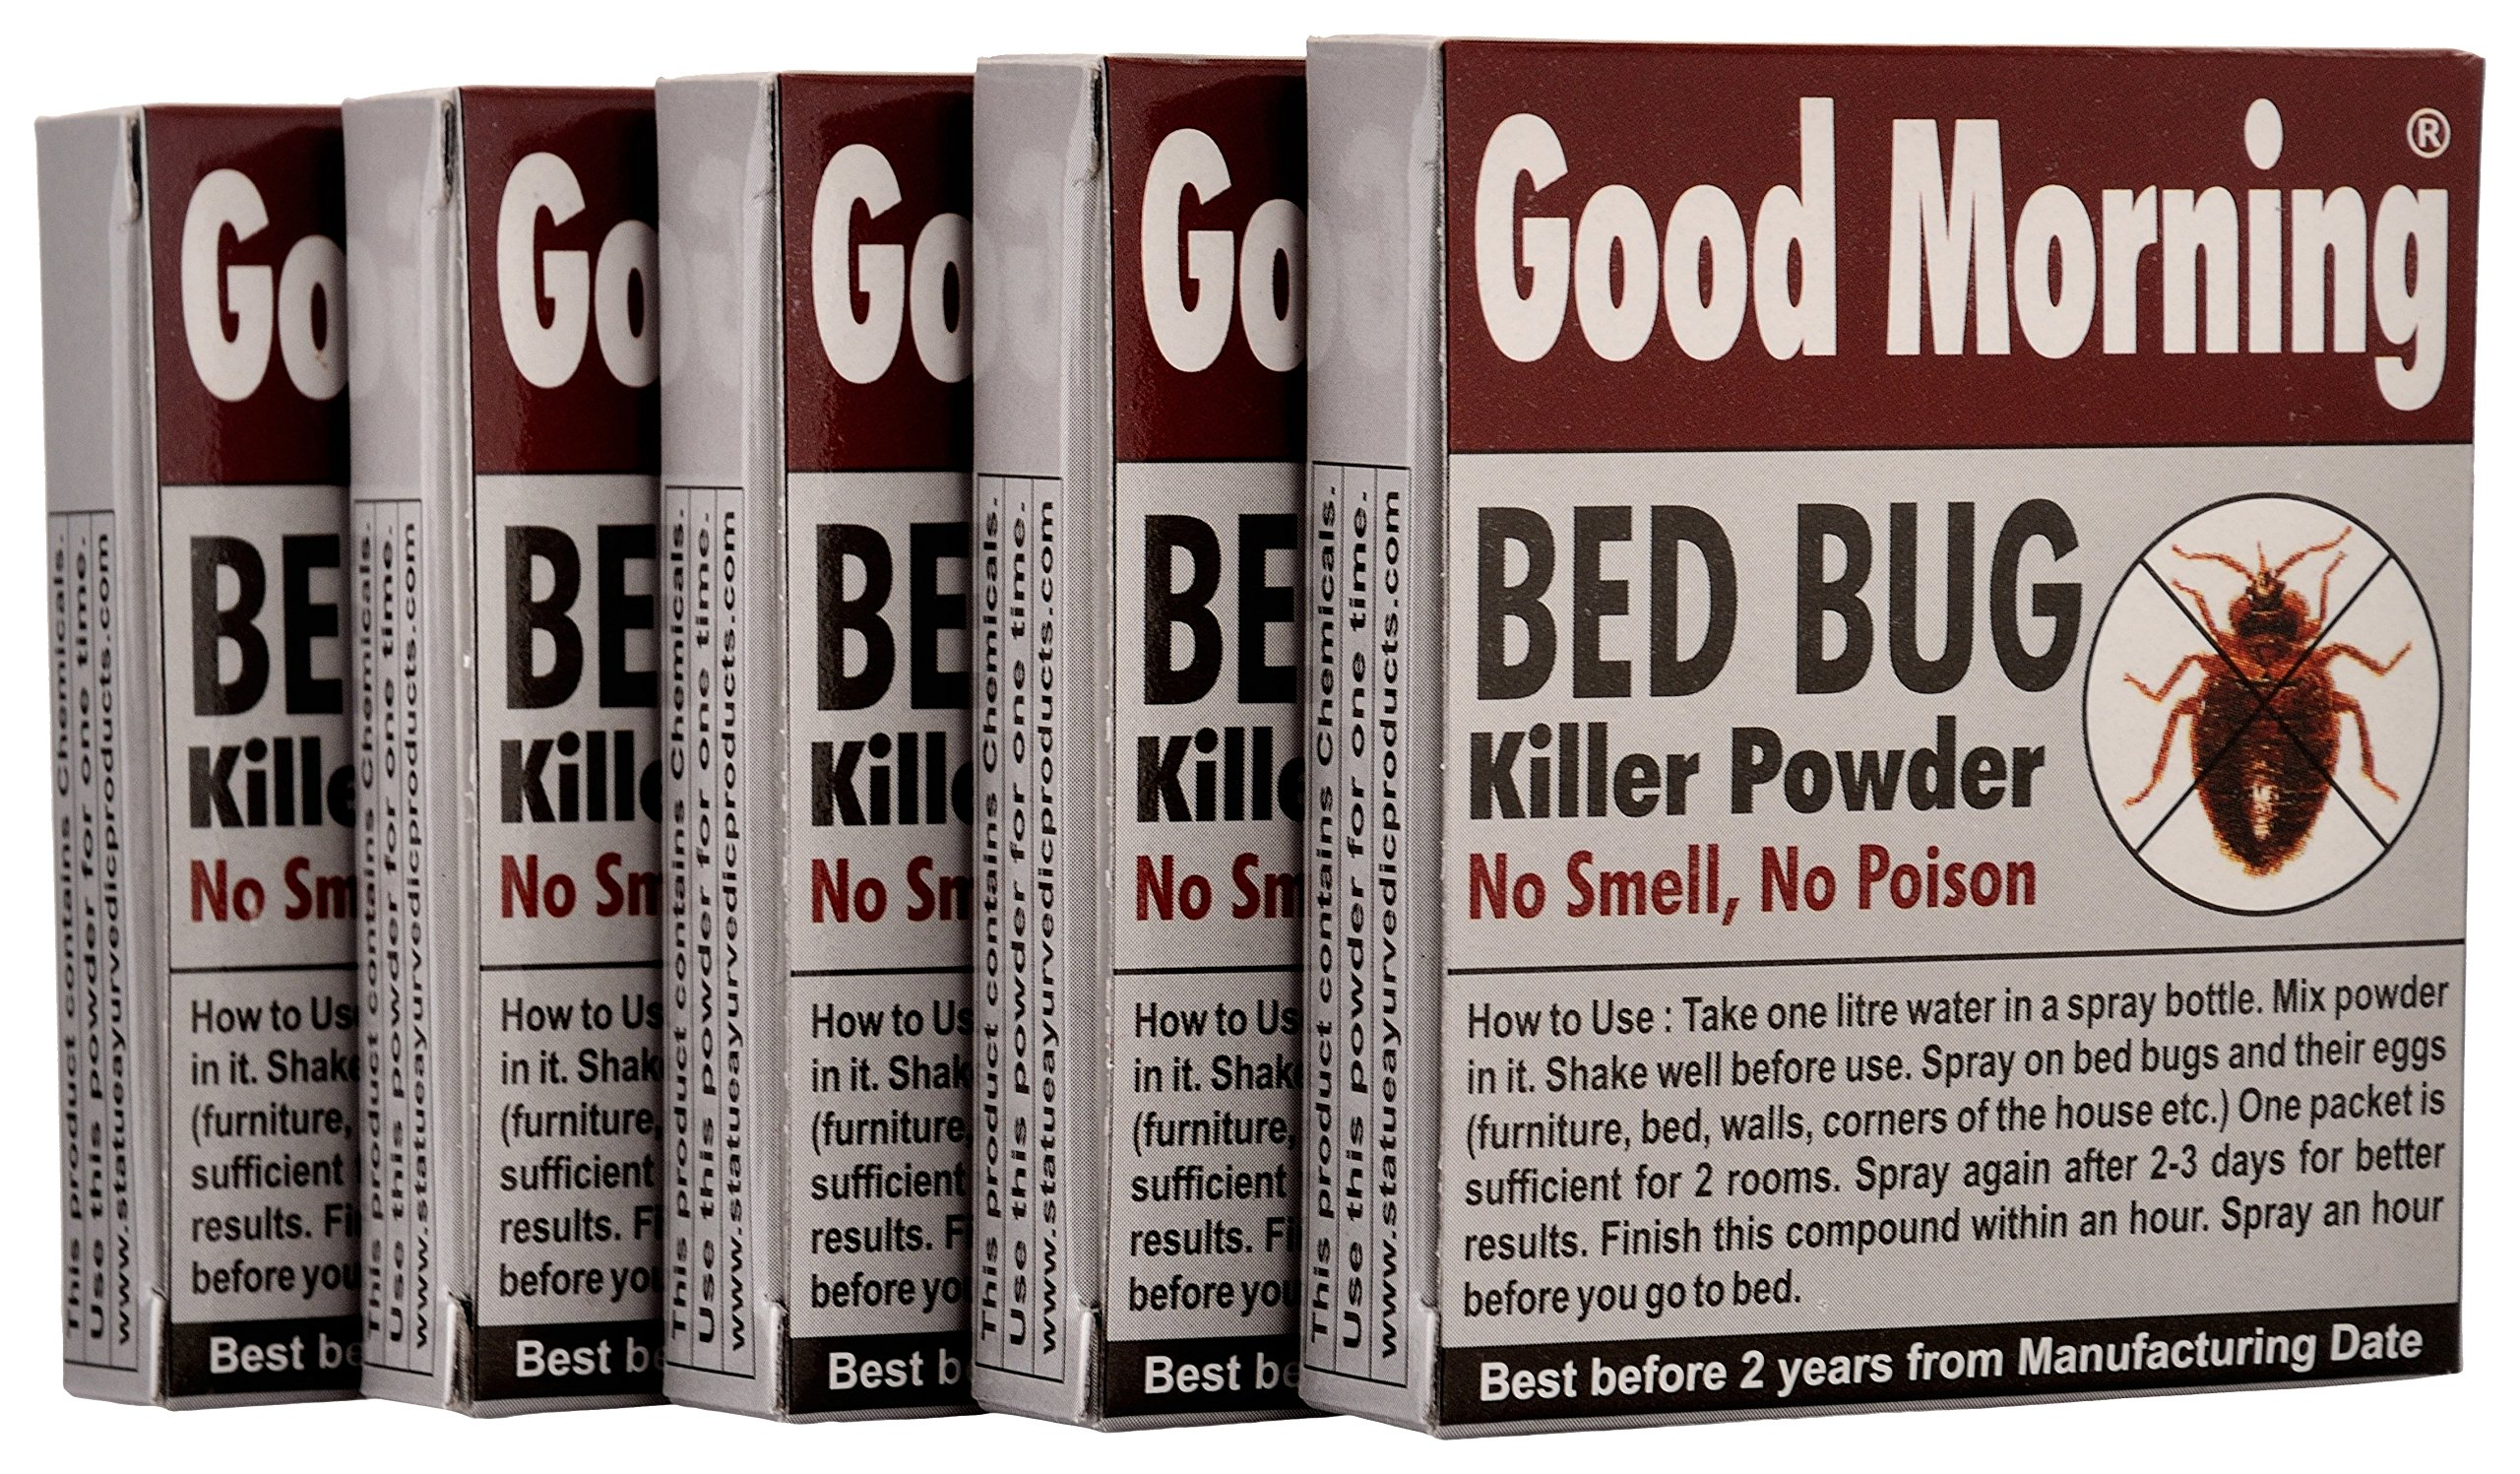 Good Morning Bed Bug Killer Powder (Pack of 5) product image